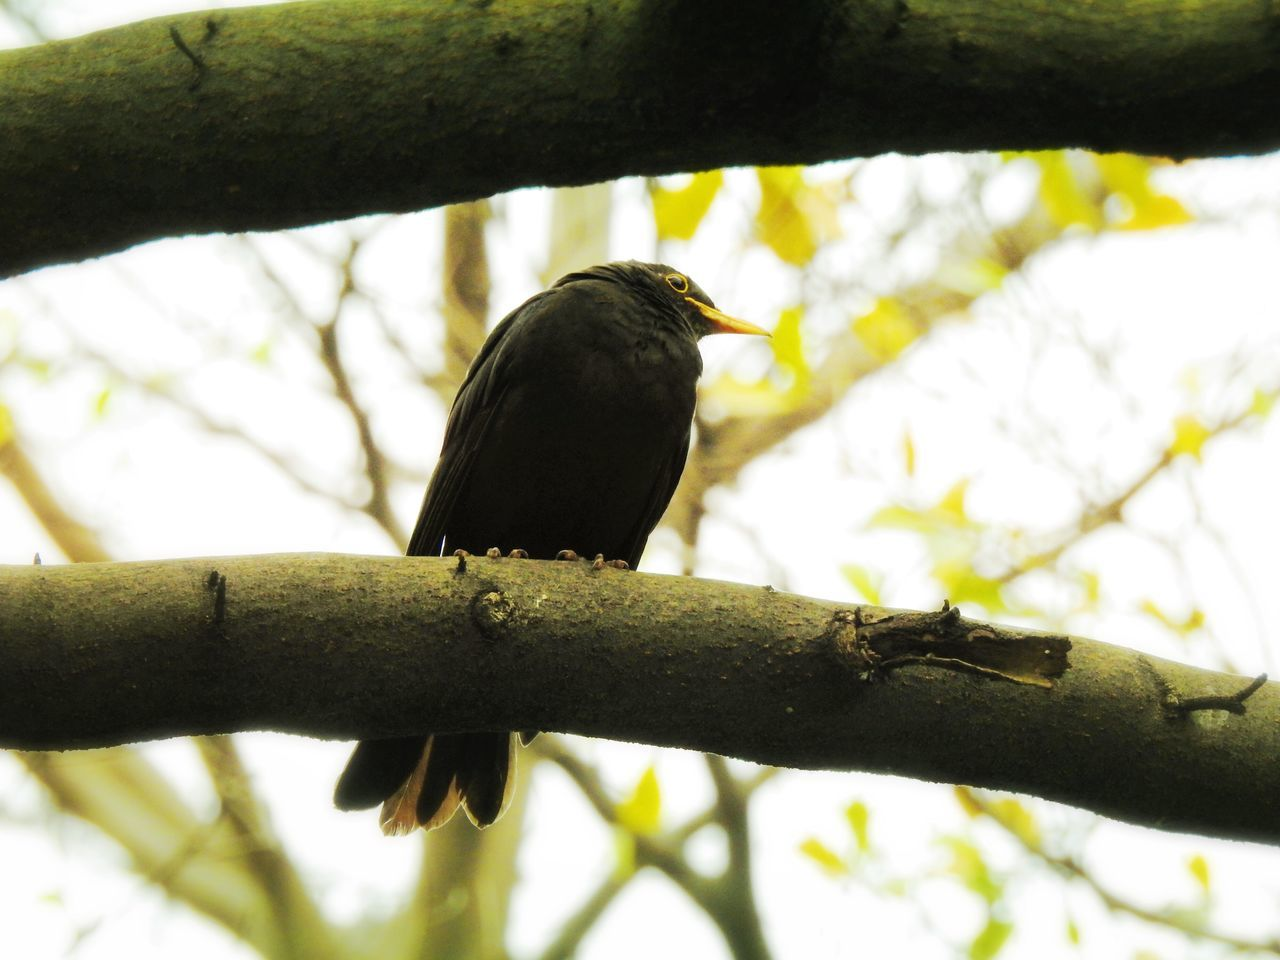 Bird Perching Animal Themes One Animal Tree Animals In The Wild Animal Wildlife Branch Low Angle View Nature No People Outdoors Day Beauty In Nature